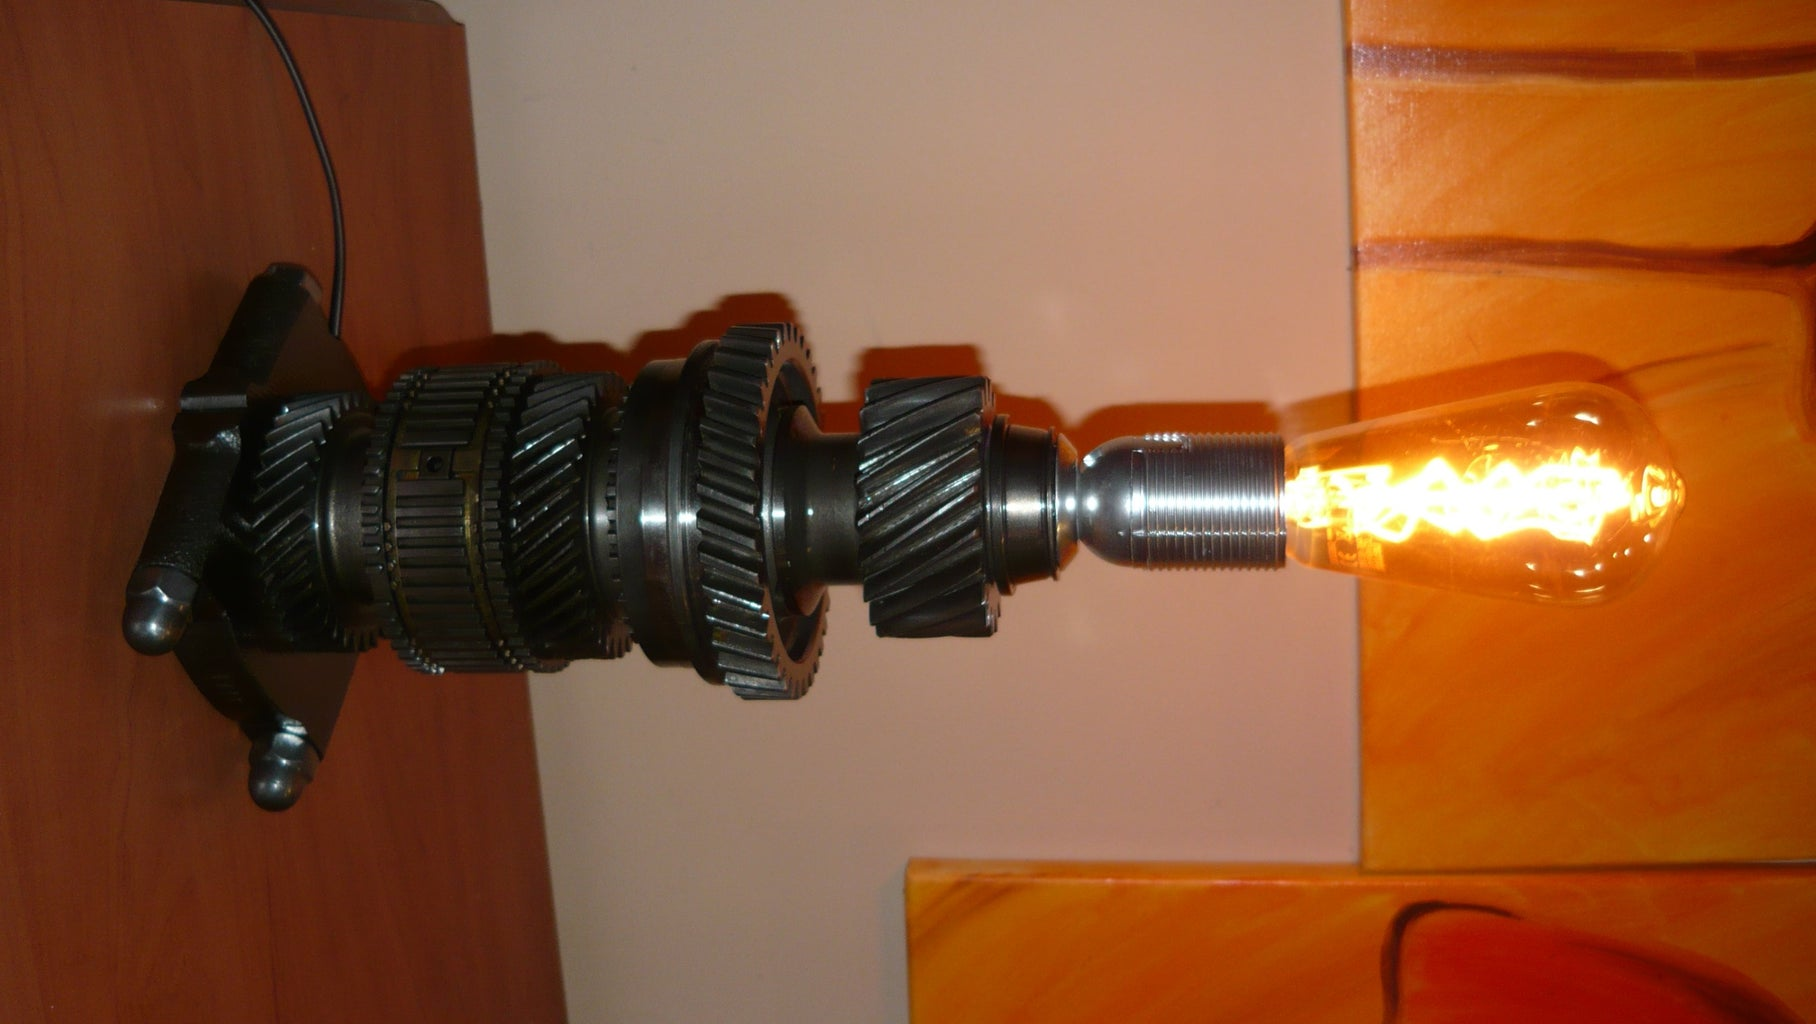 DIY GEARBOX PARTS TABLE LAMP